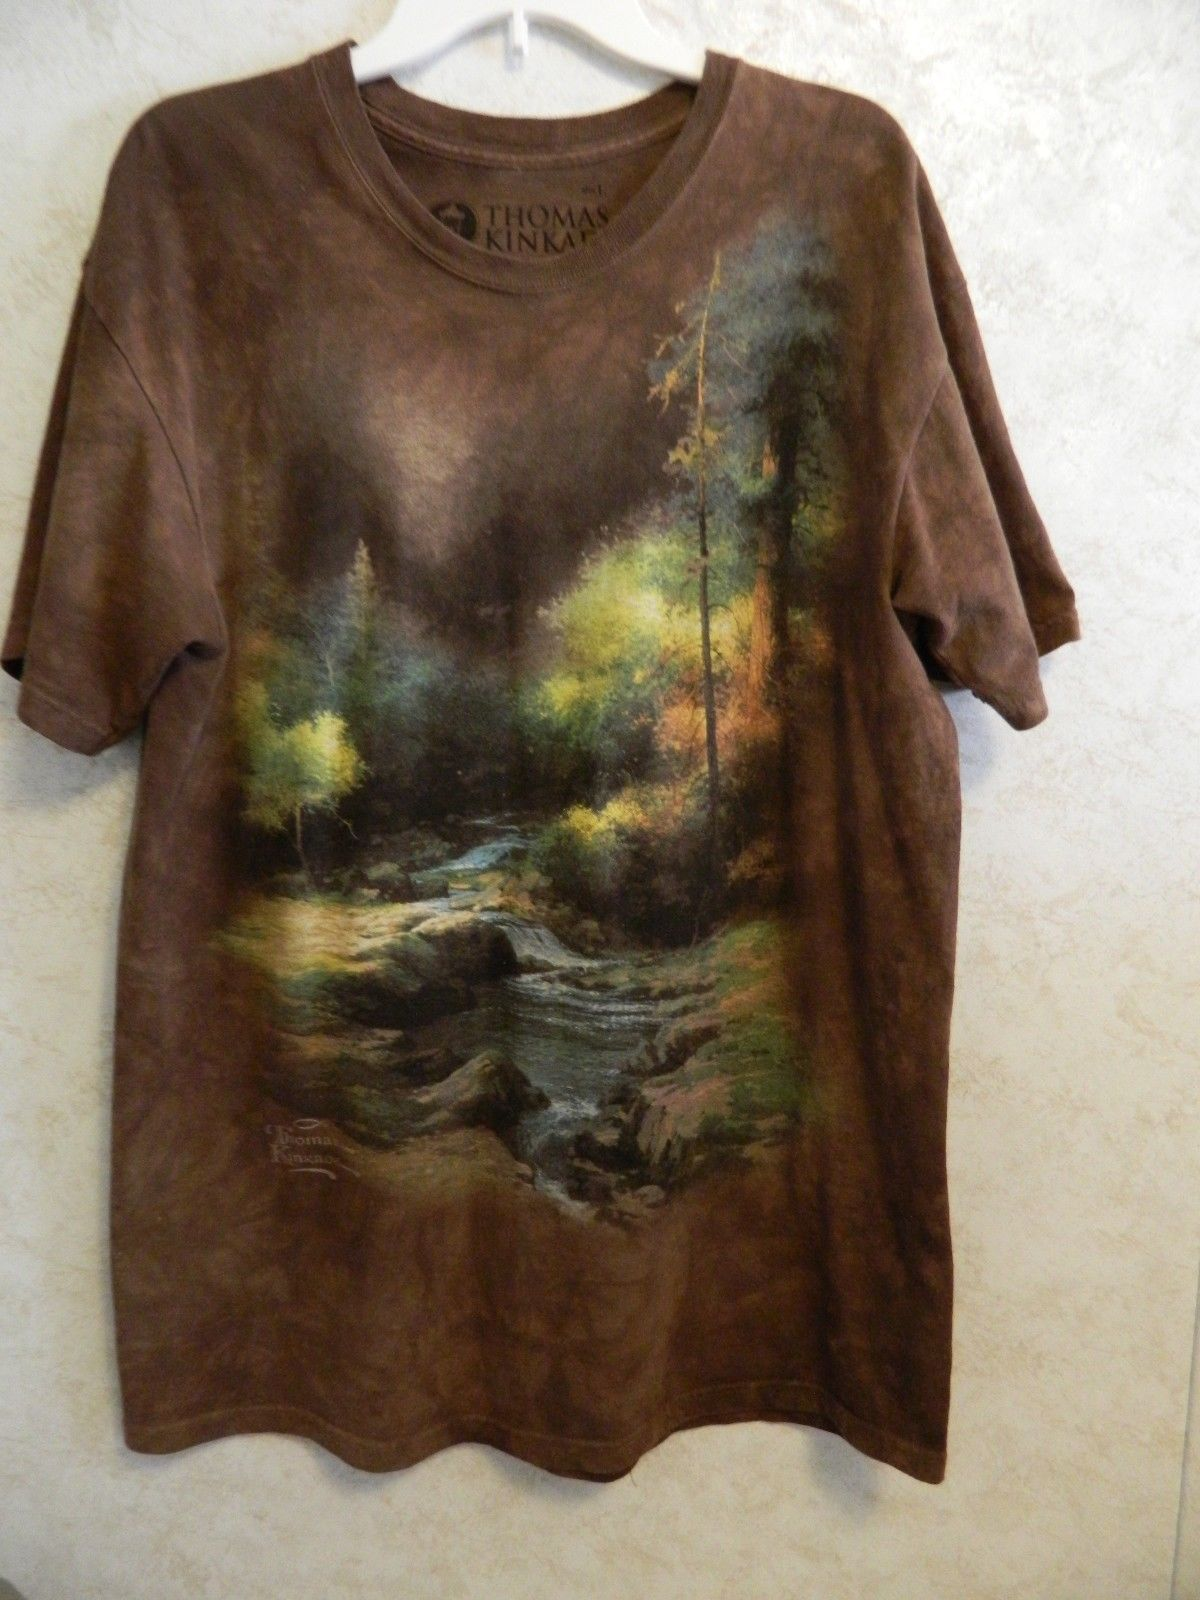 Primary image for Thomas Kincaid Painter of Light The Mountain Men's T Shirt Size L Brown Tie Dye